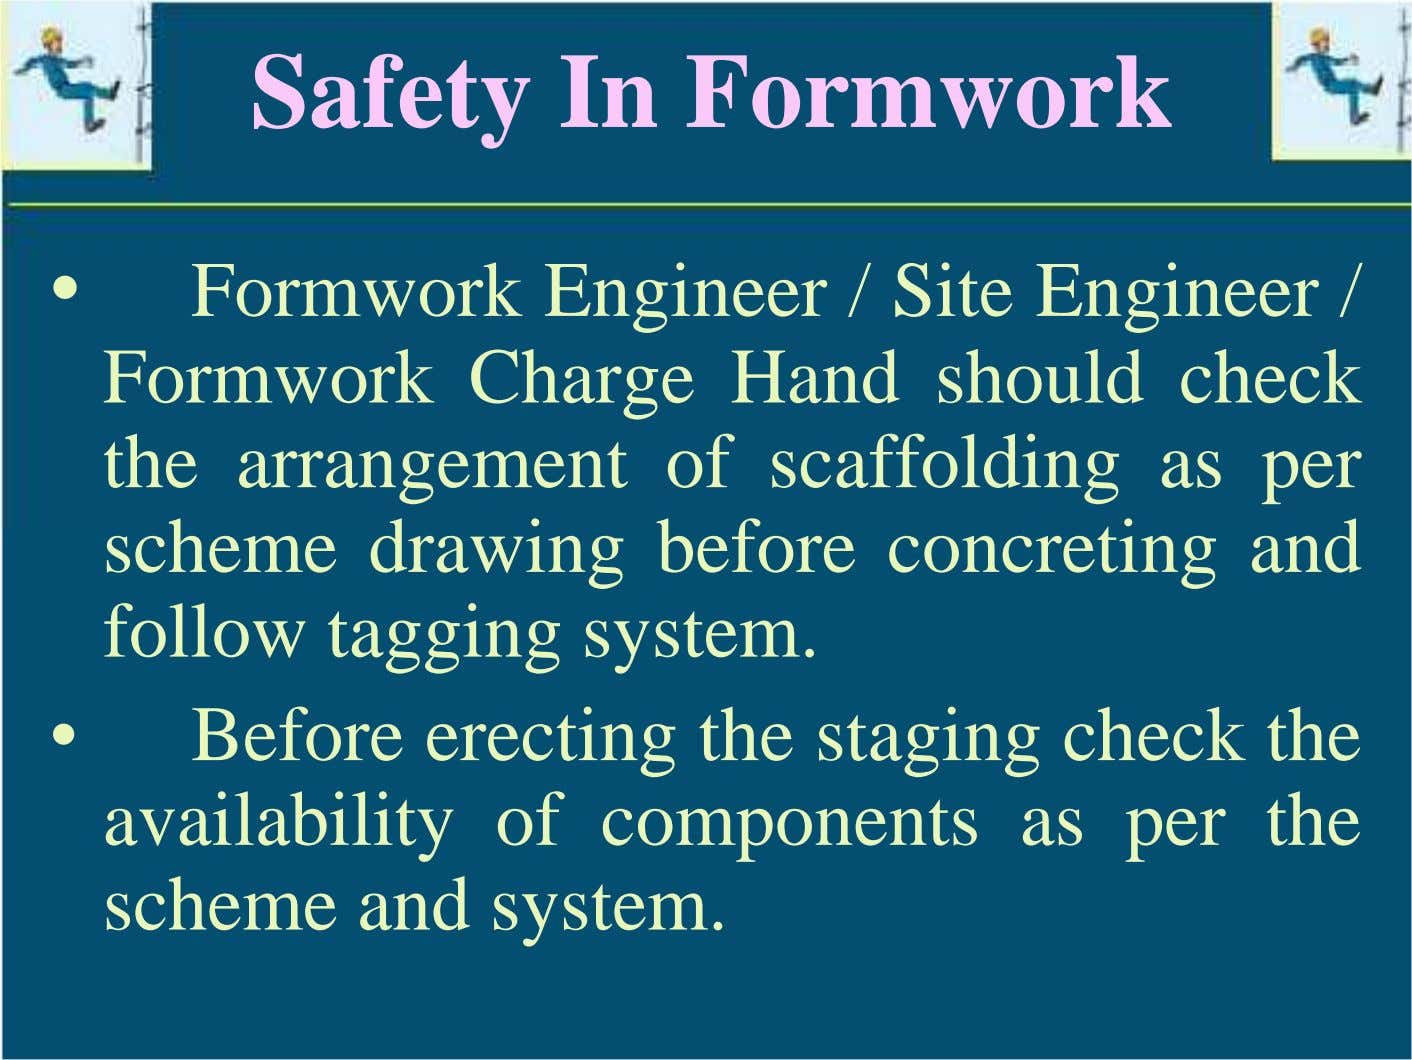 Safety In Formwork • Formwork Engineer / Site Engineer / Formwork Charge Hand should check